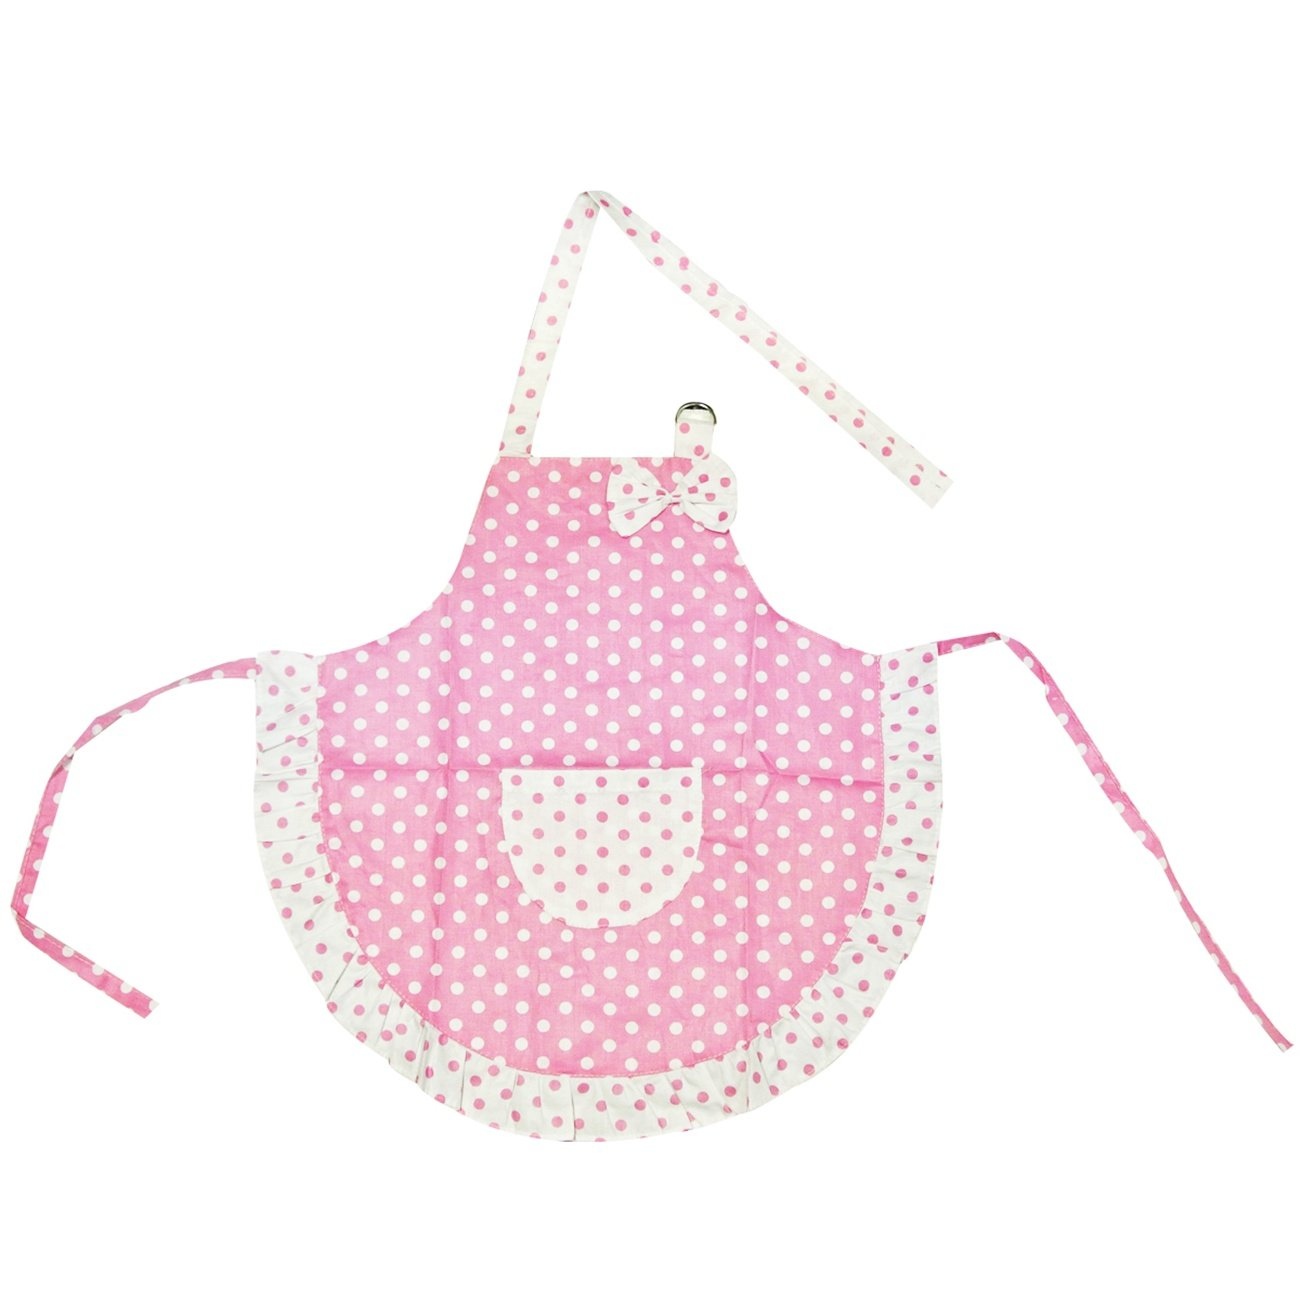 White ruffle apron amazon - Buy Kella Milla Kids Apron And Hat Set Polka Dots And Ruffles Pink Online At Low Prices In India Amazon In